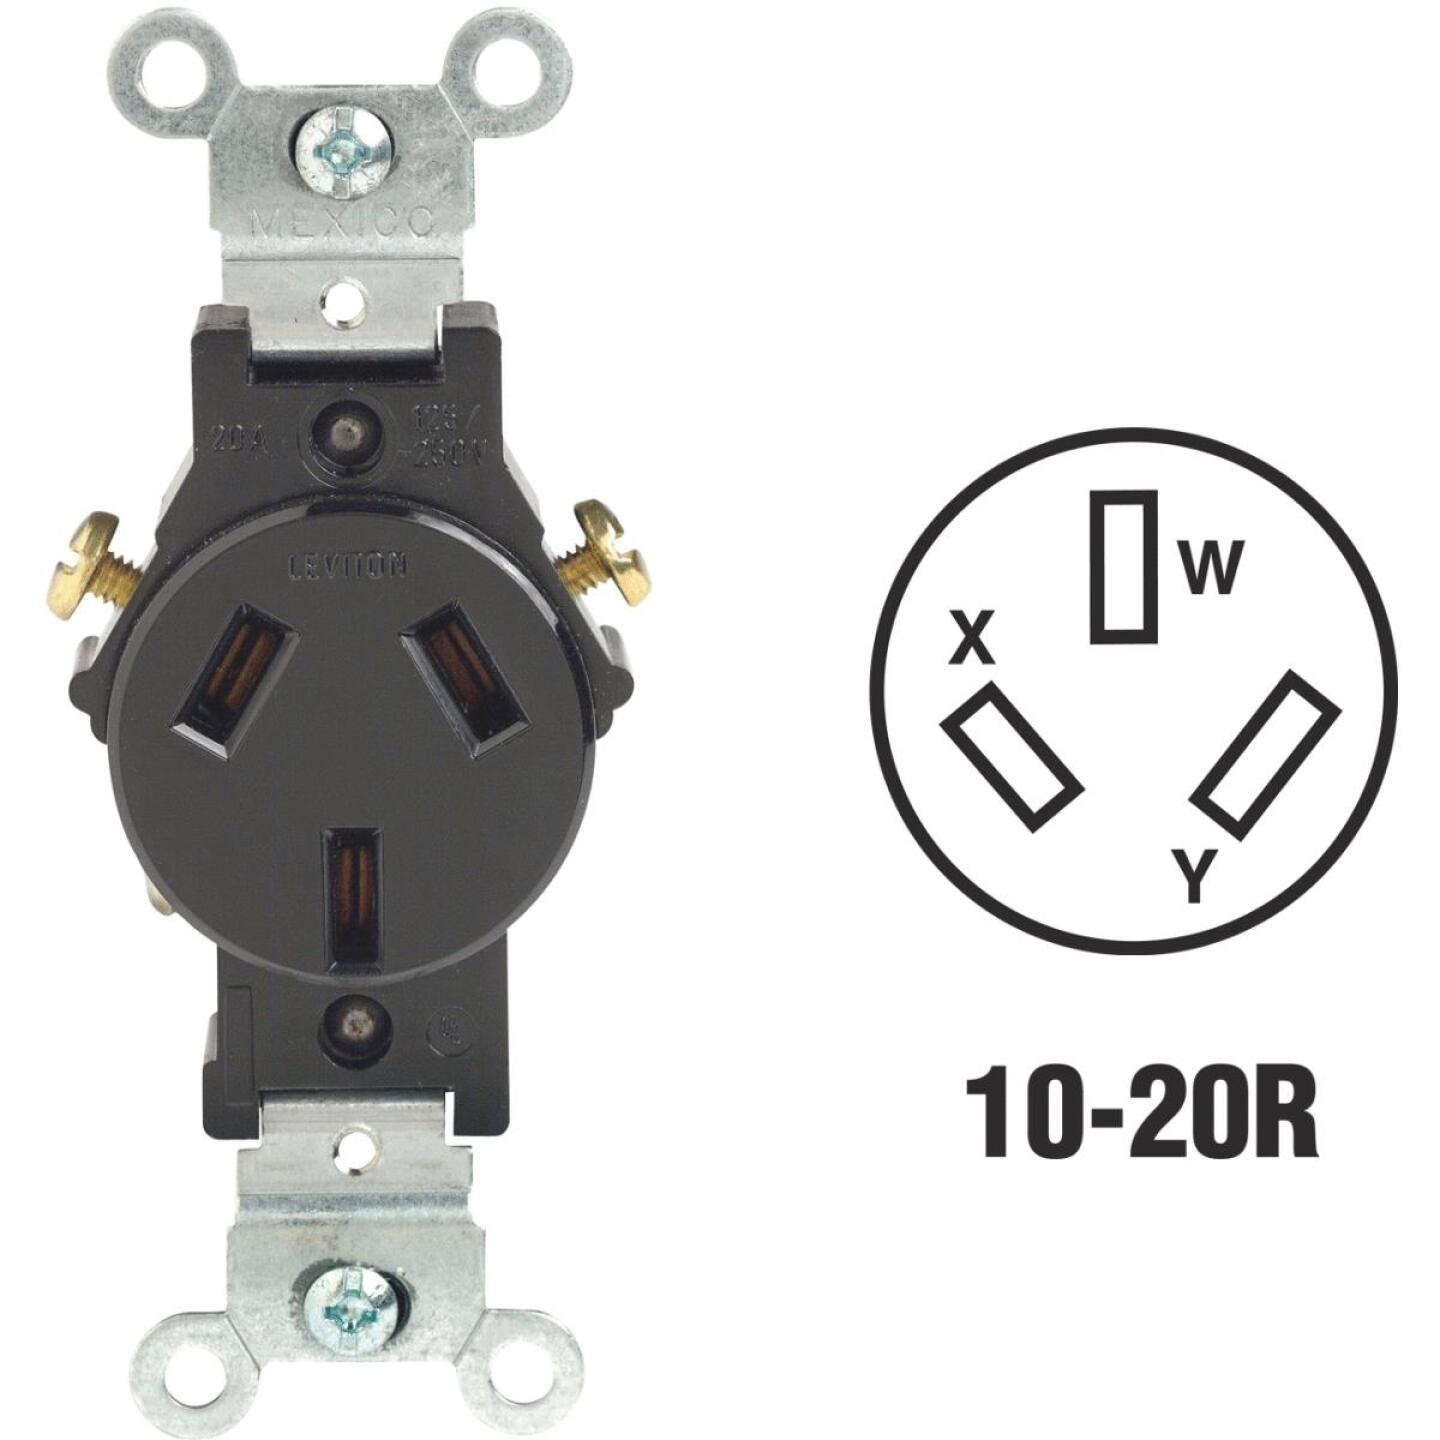 Leviton 20A Black Commercial Grade 10-20R Non-Grounding Single Outlet Image 1